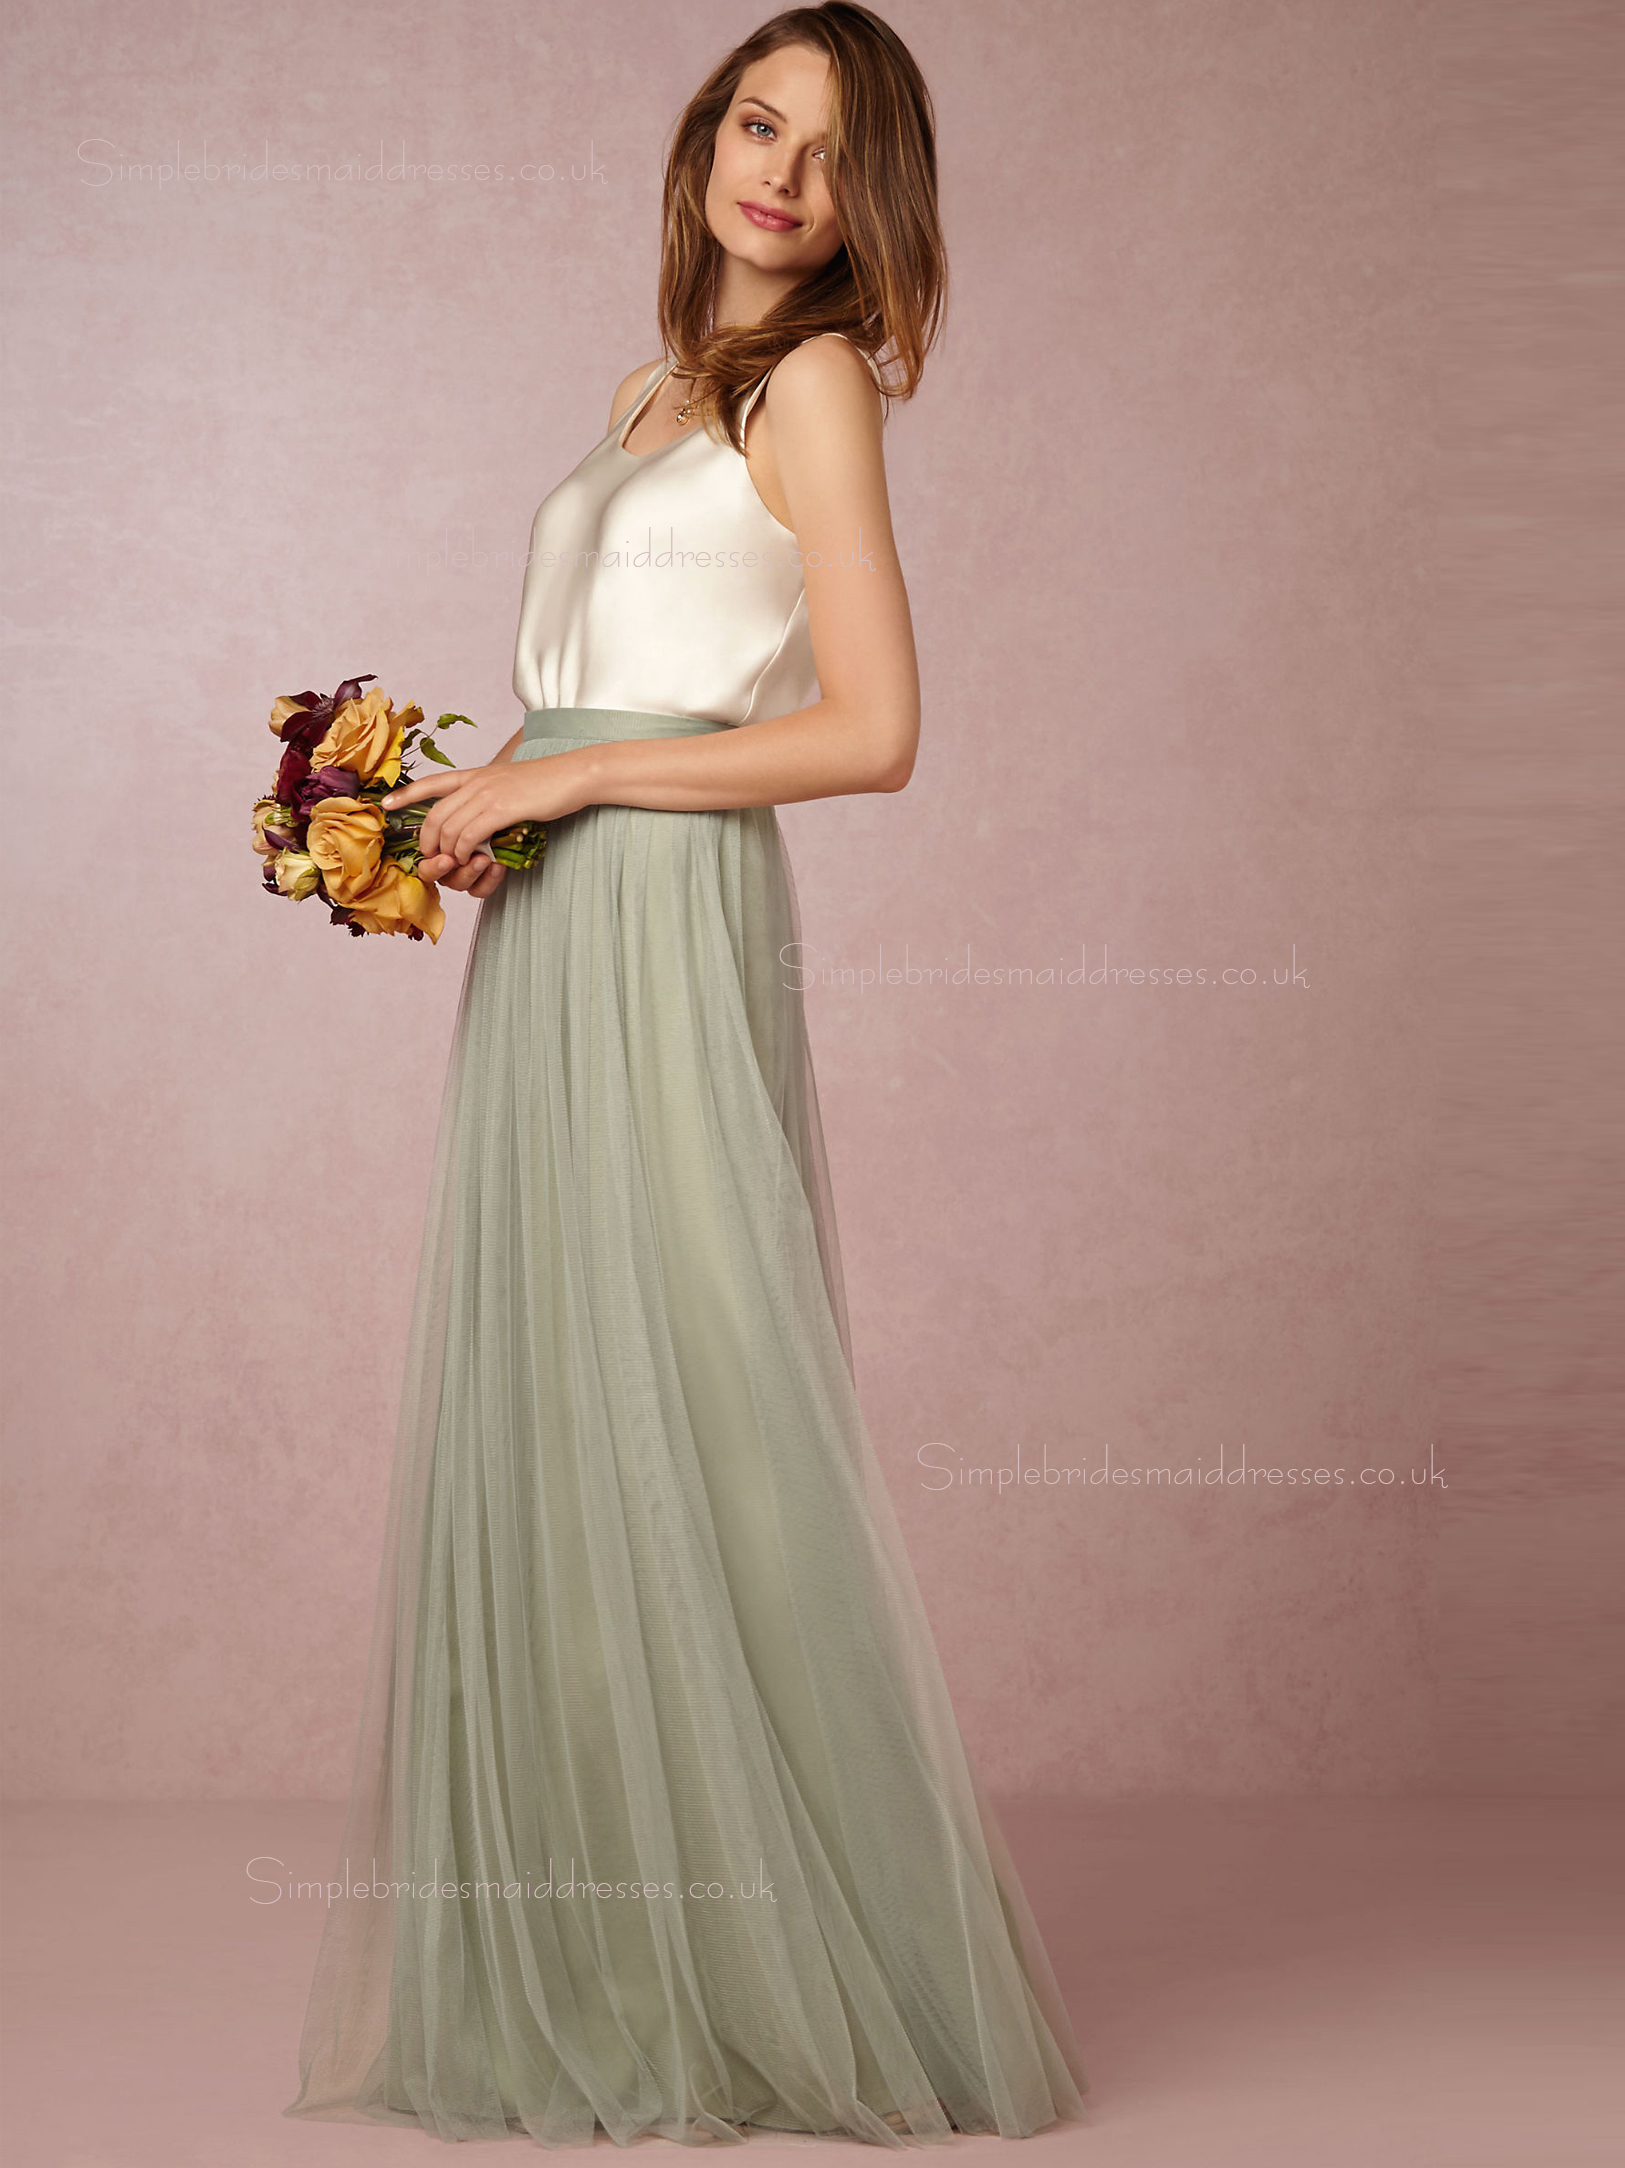 Bridesmaid Dresses Online UK | Cheap Bridesmaid Dresses ...